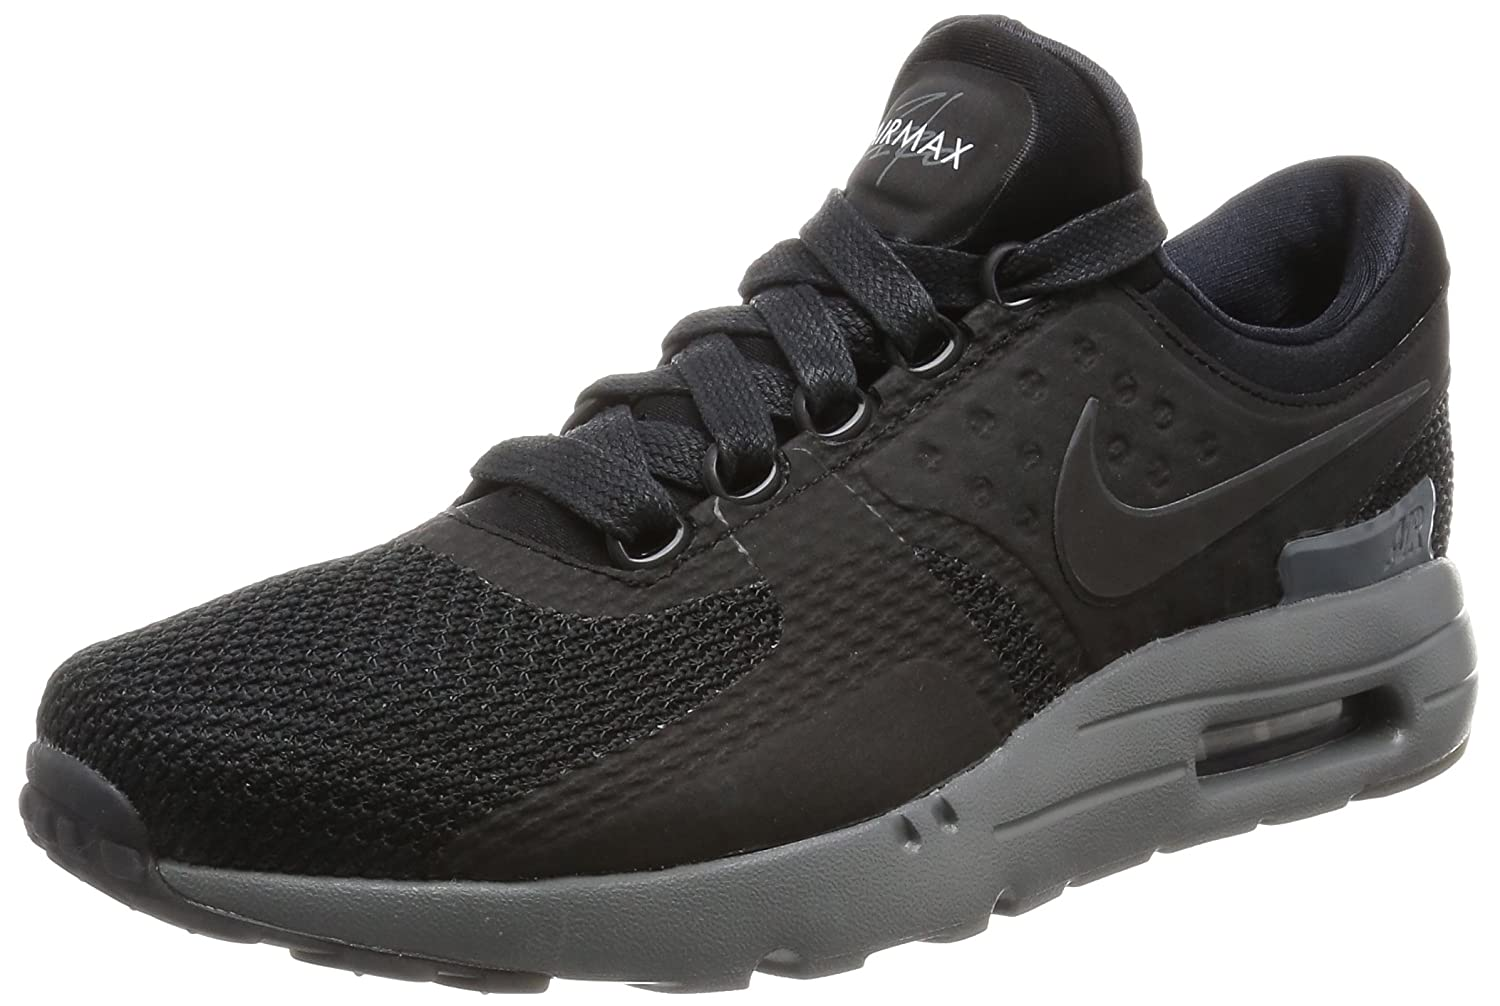 hot sale online a011e 25b03 Amazon.com | Nike Men's Air Max Zero QS Running Shoe | Shoes